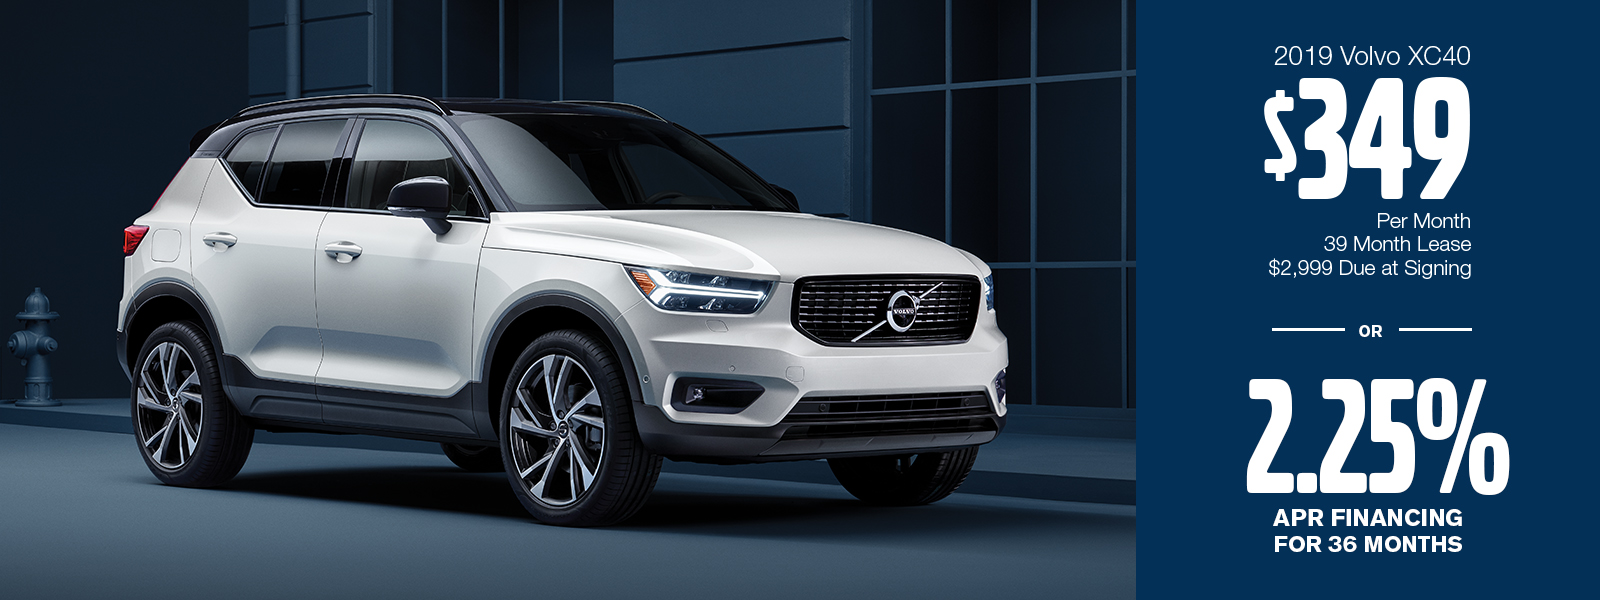 New 2019 Volvo XC40 Sales or Lease Specials | Gilbert, AZ